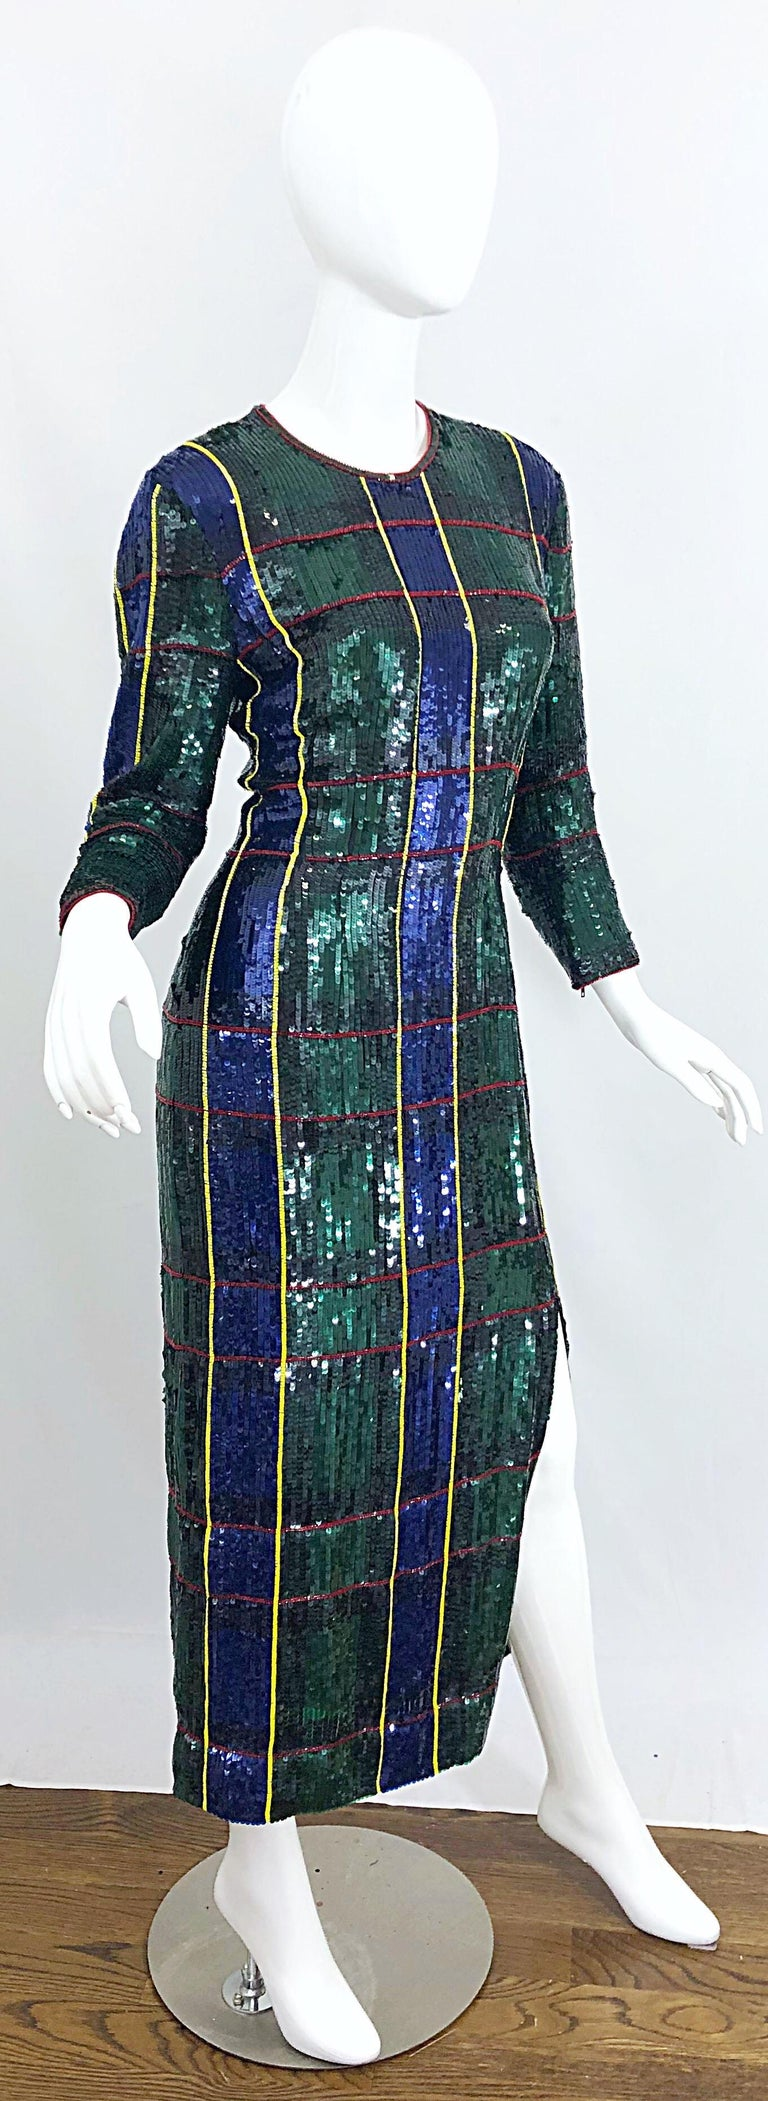 1990s Escada Couture Tartan Plaid Fully Sequined Silk Vintage 90s Evening Gown For Sale 7